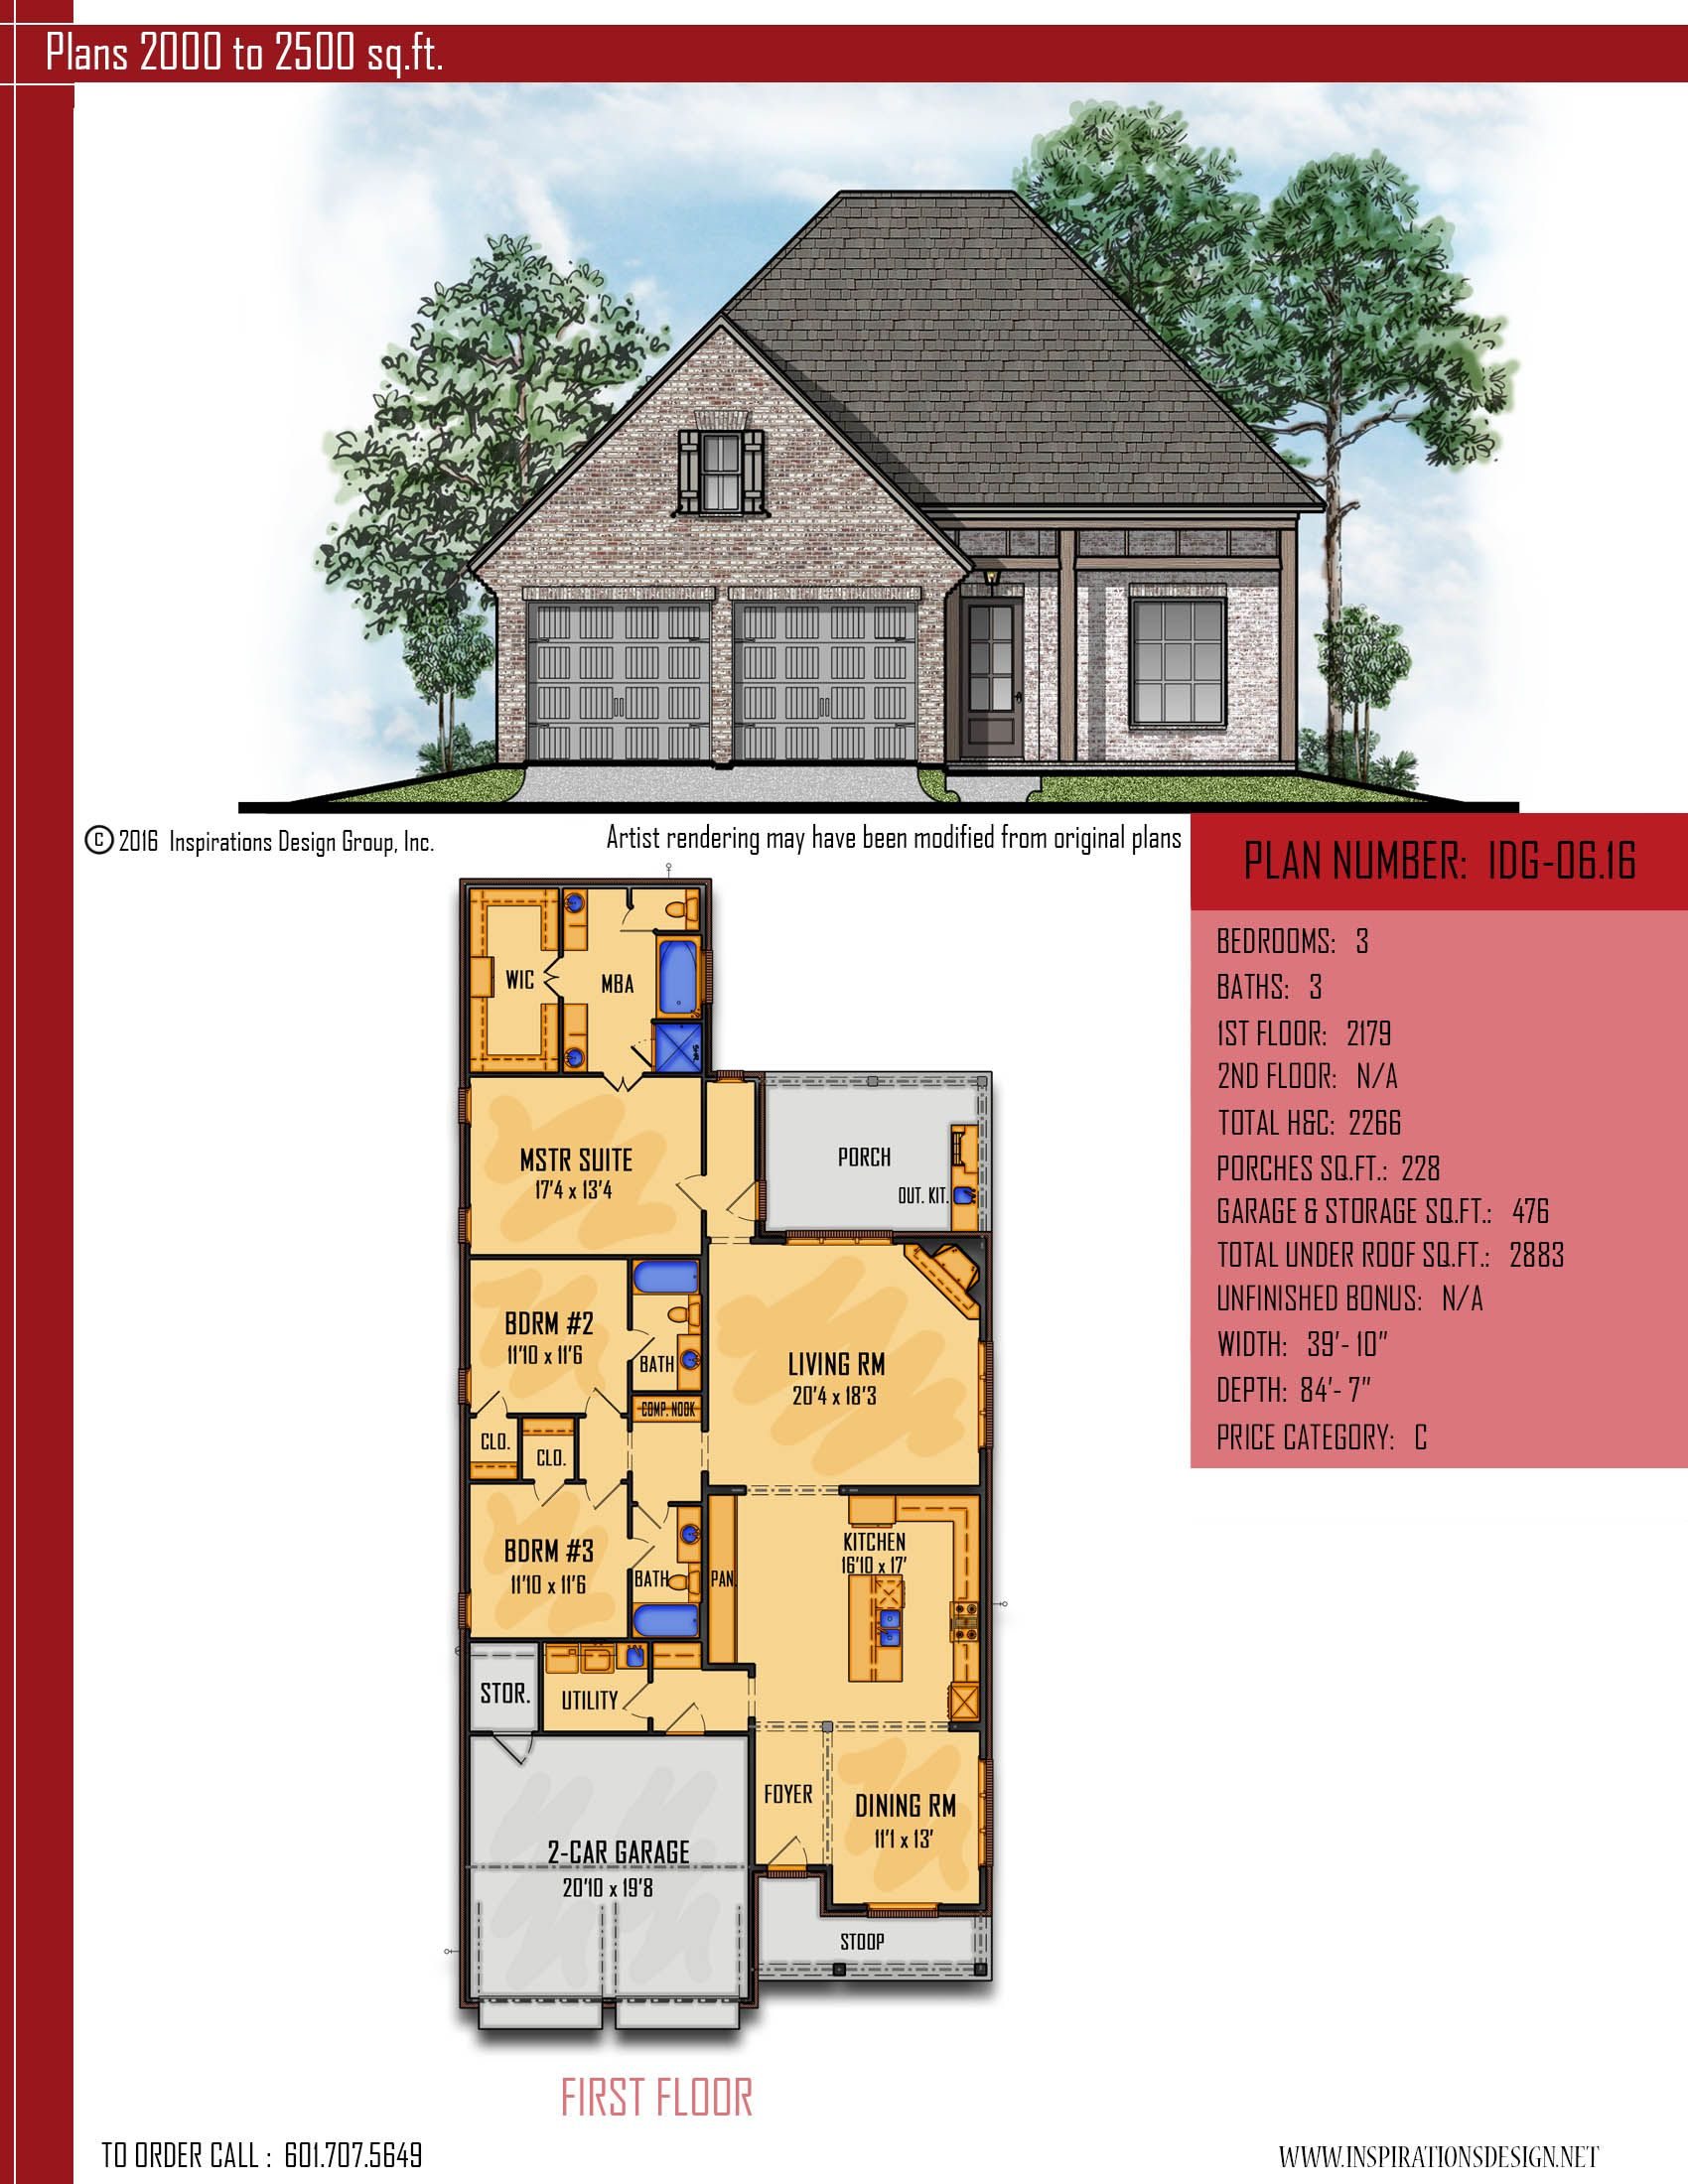 Gorgeous narrow home plan. Nice front porch 3 bedroom 3 bath ... on narrow house layout, narrow art, narrow home, narrow house roof, narrow sink, narrow yard landscaping ideas, narrow modern house, narrow cabinets, narrow windows, narrow bedroom, narrow house interior design, narrow house elevations, narrow garden, small lake lot plans, narrow lot house, narrow kitchens, framing plans, narrow 3 story house, narrow doors, narrow beach house,